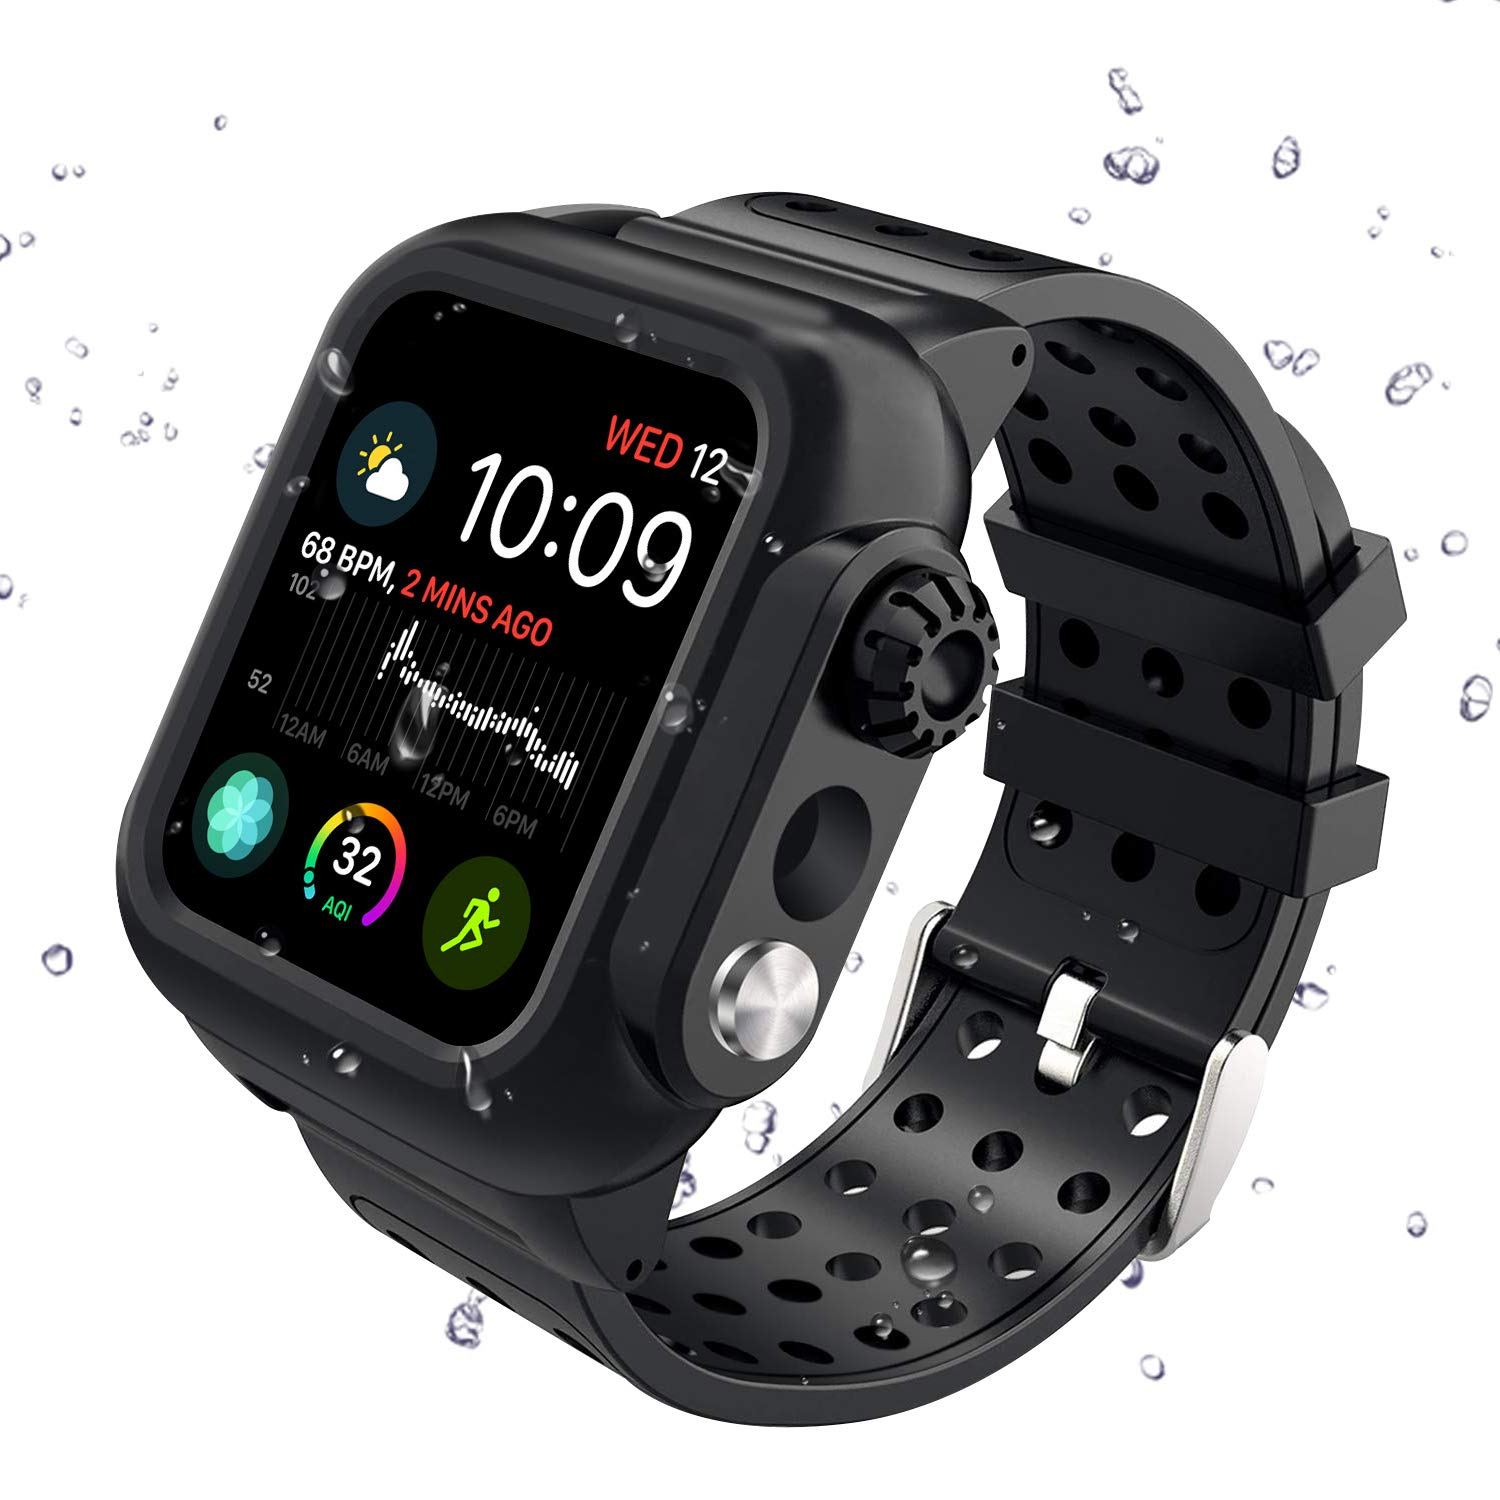 Apple Watch Series 4 44mm Band, Hertekdo Apple Watch 4 Case 44mm with Premium Soft Silicone Scratch Resistant Apple Watch Band Full Body Protections Cover Shockproof Dustproof Case by Hertekdo